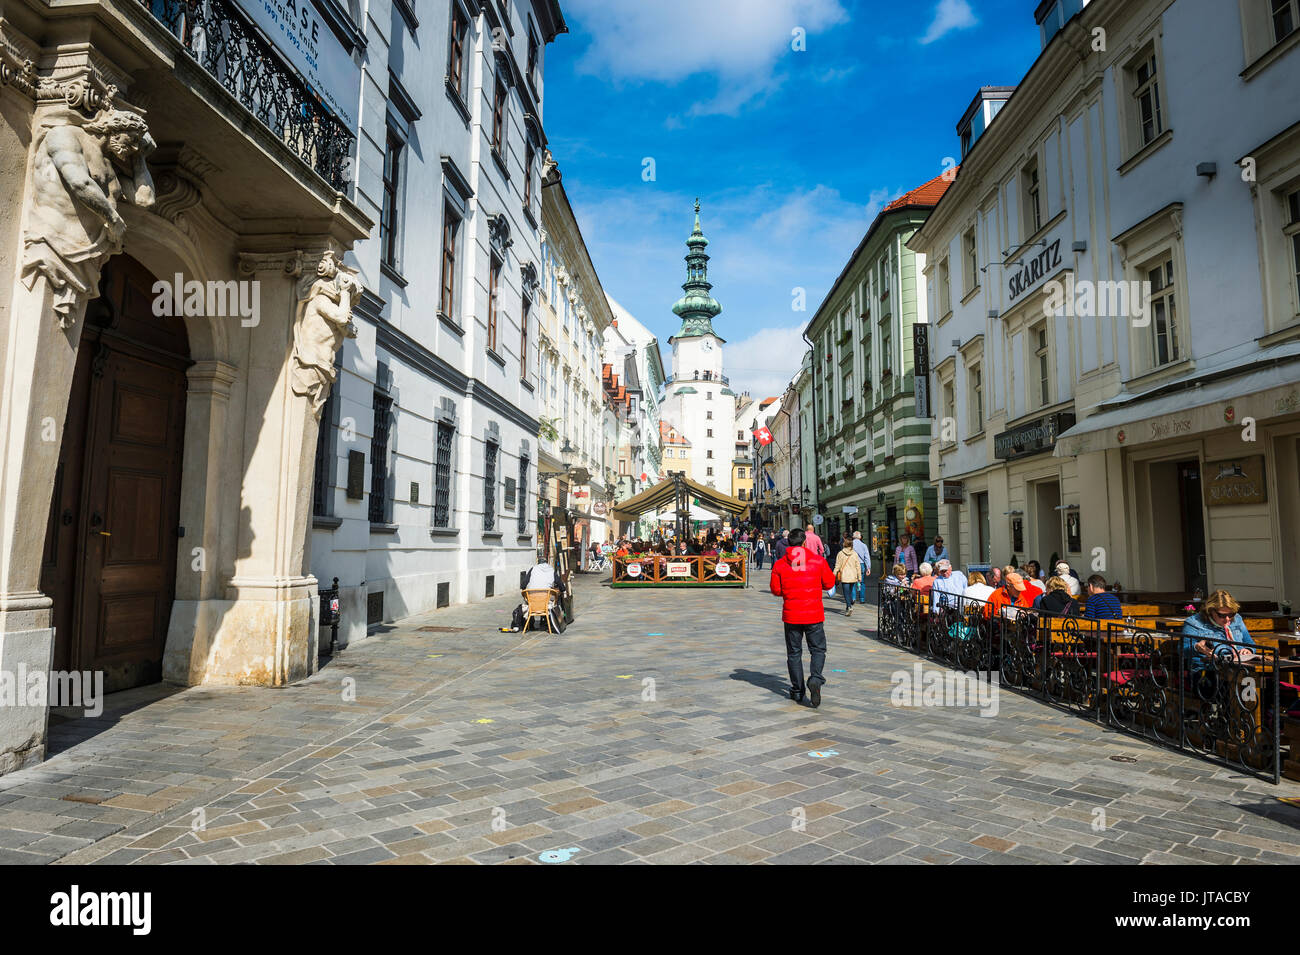 Pedestrian zone in the centre of Bratislava with Michael's Gate in the background, Bratislava, Slovakia, Europe - Stock Image